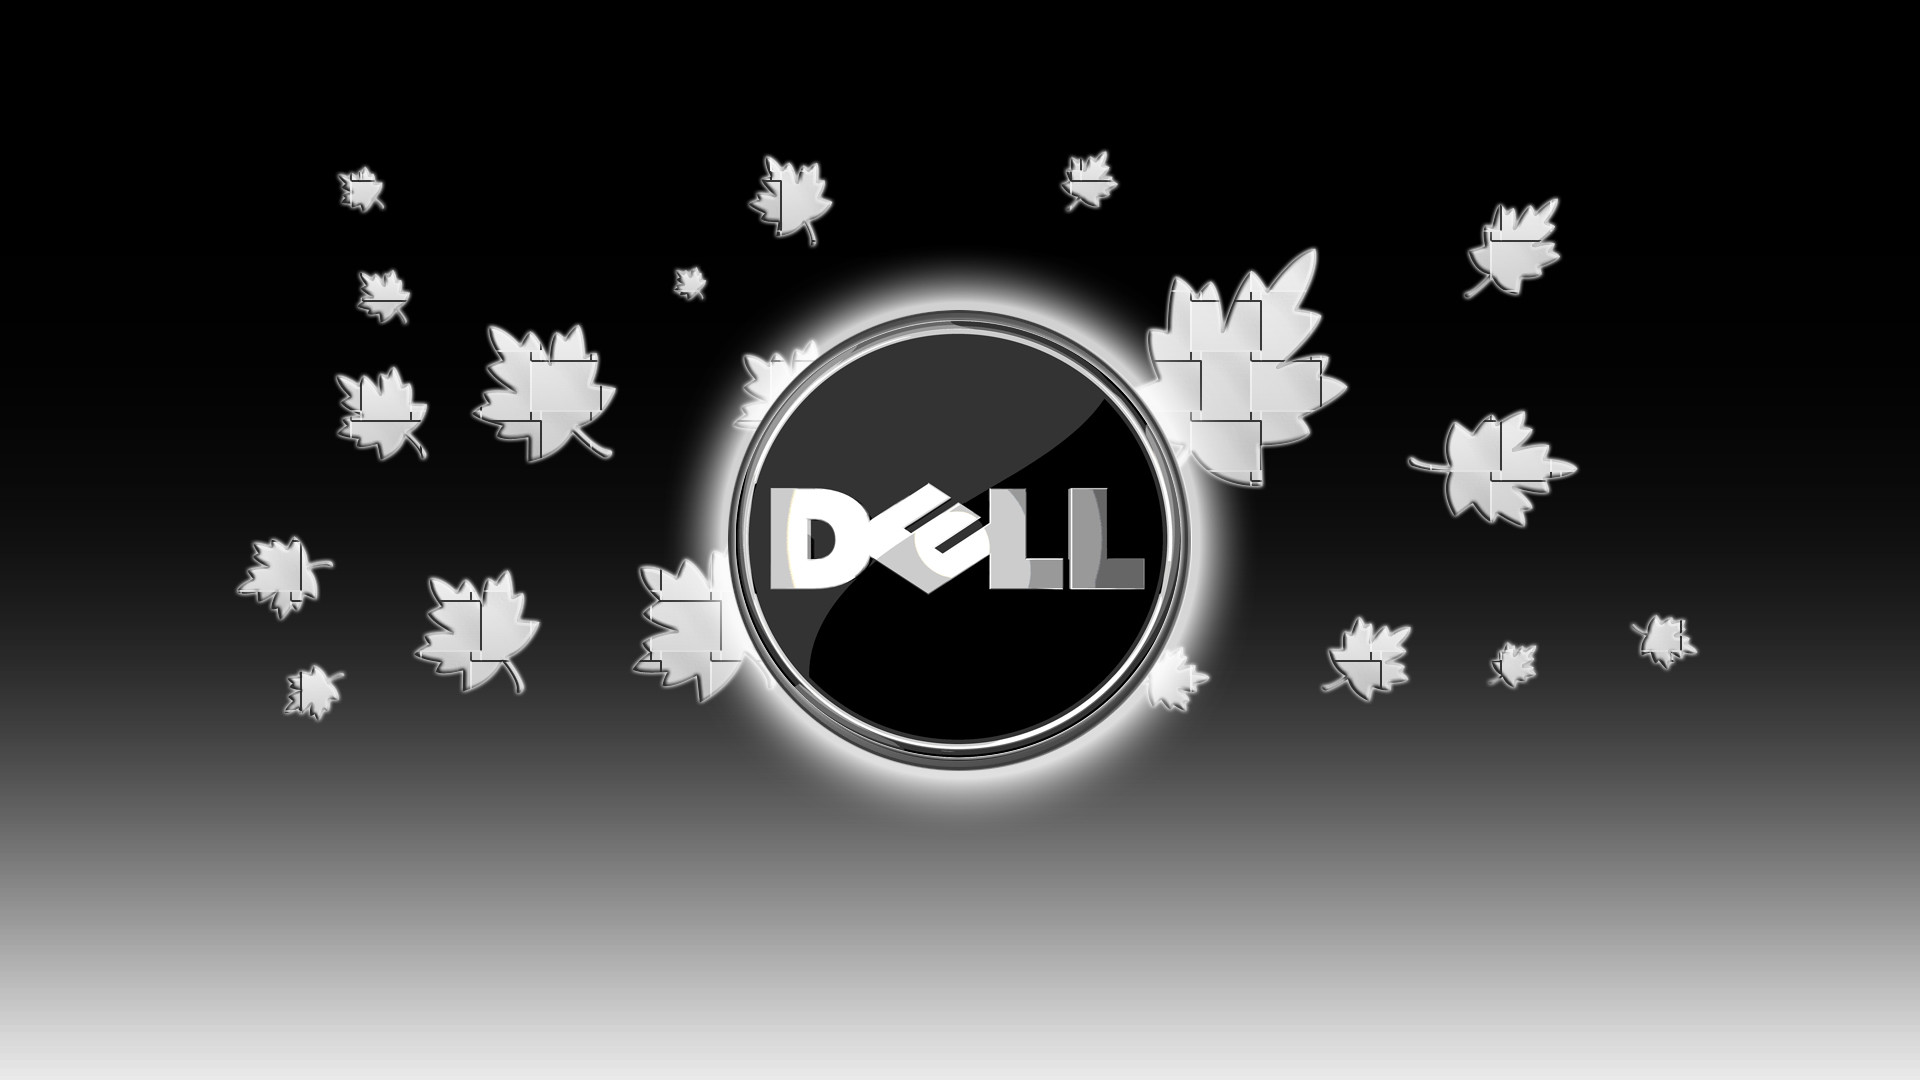 Dell Wallpaper: Dell HD Wallpaper 1920x1080 (71+ Images